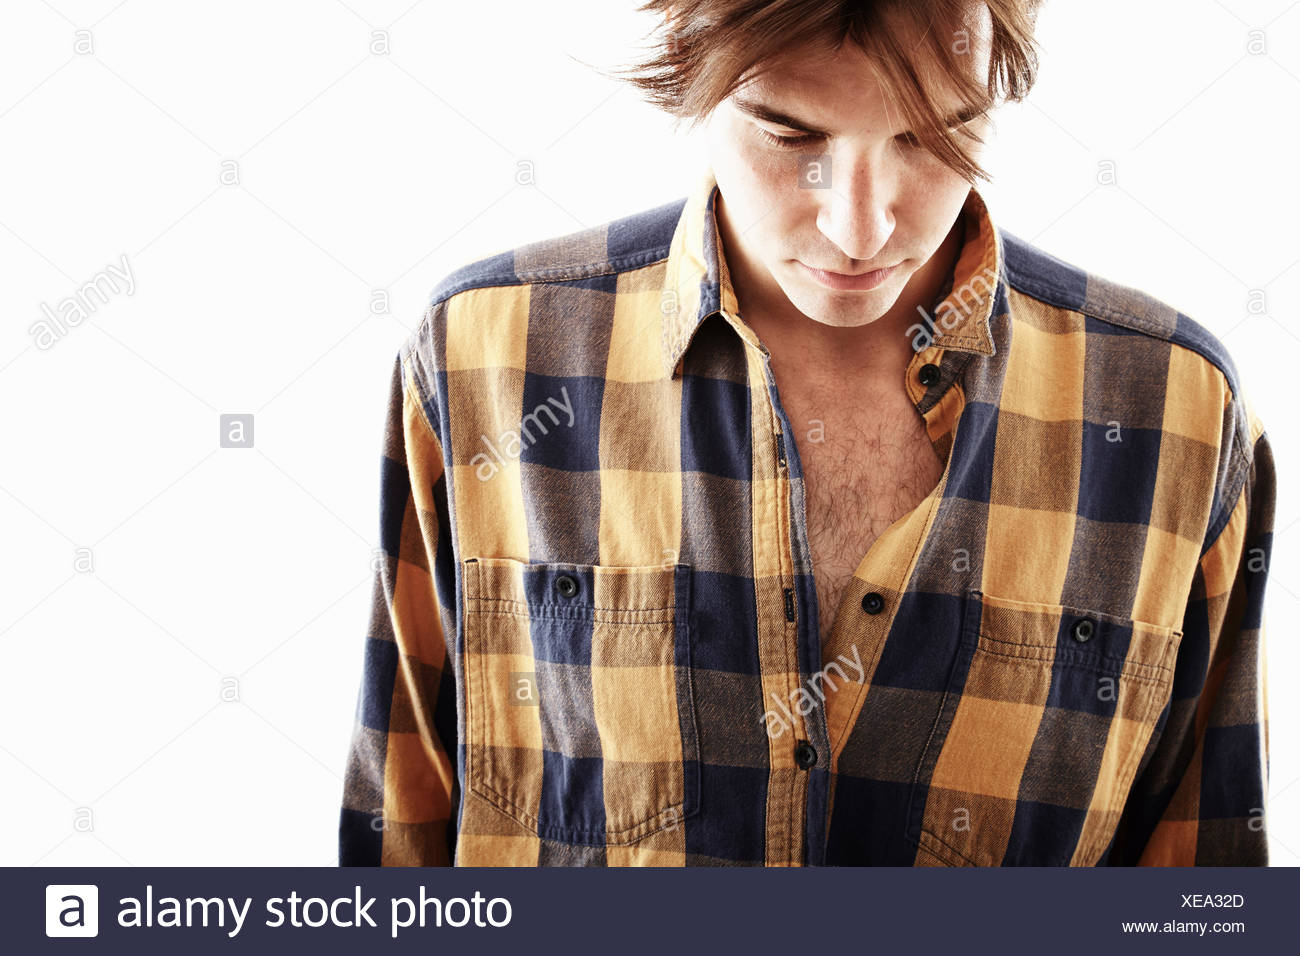 Studio portrait of young man looking down - Stock Image